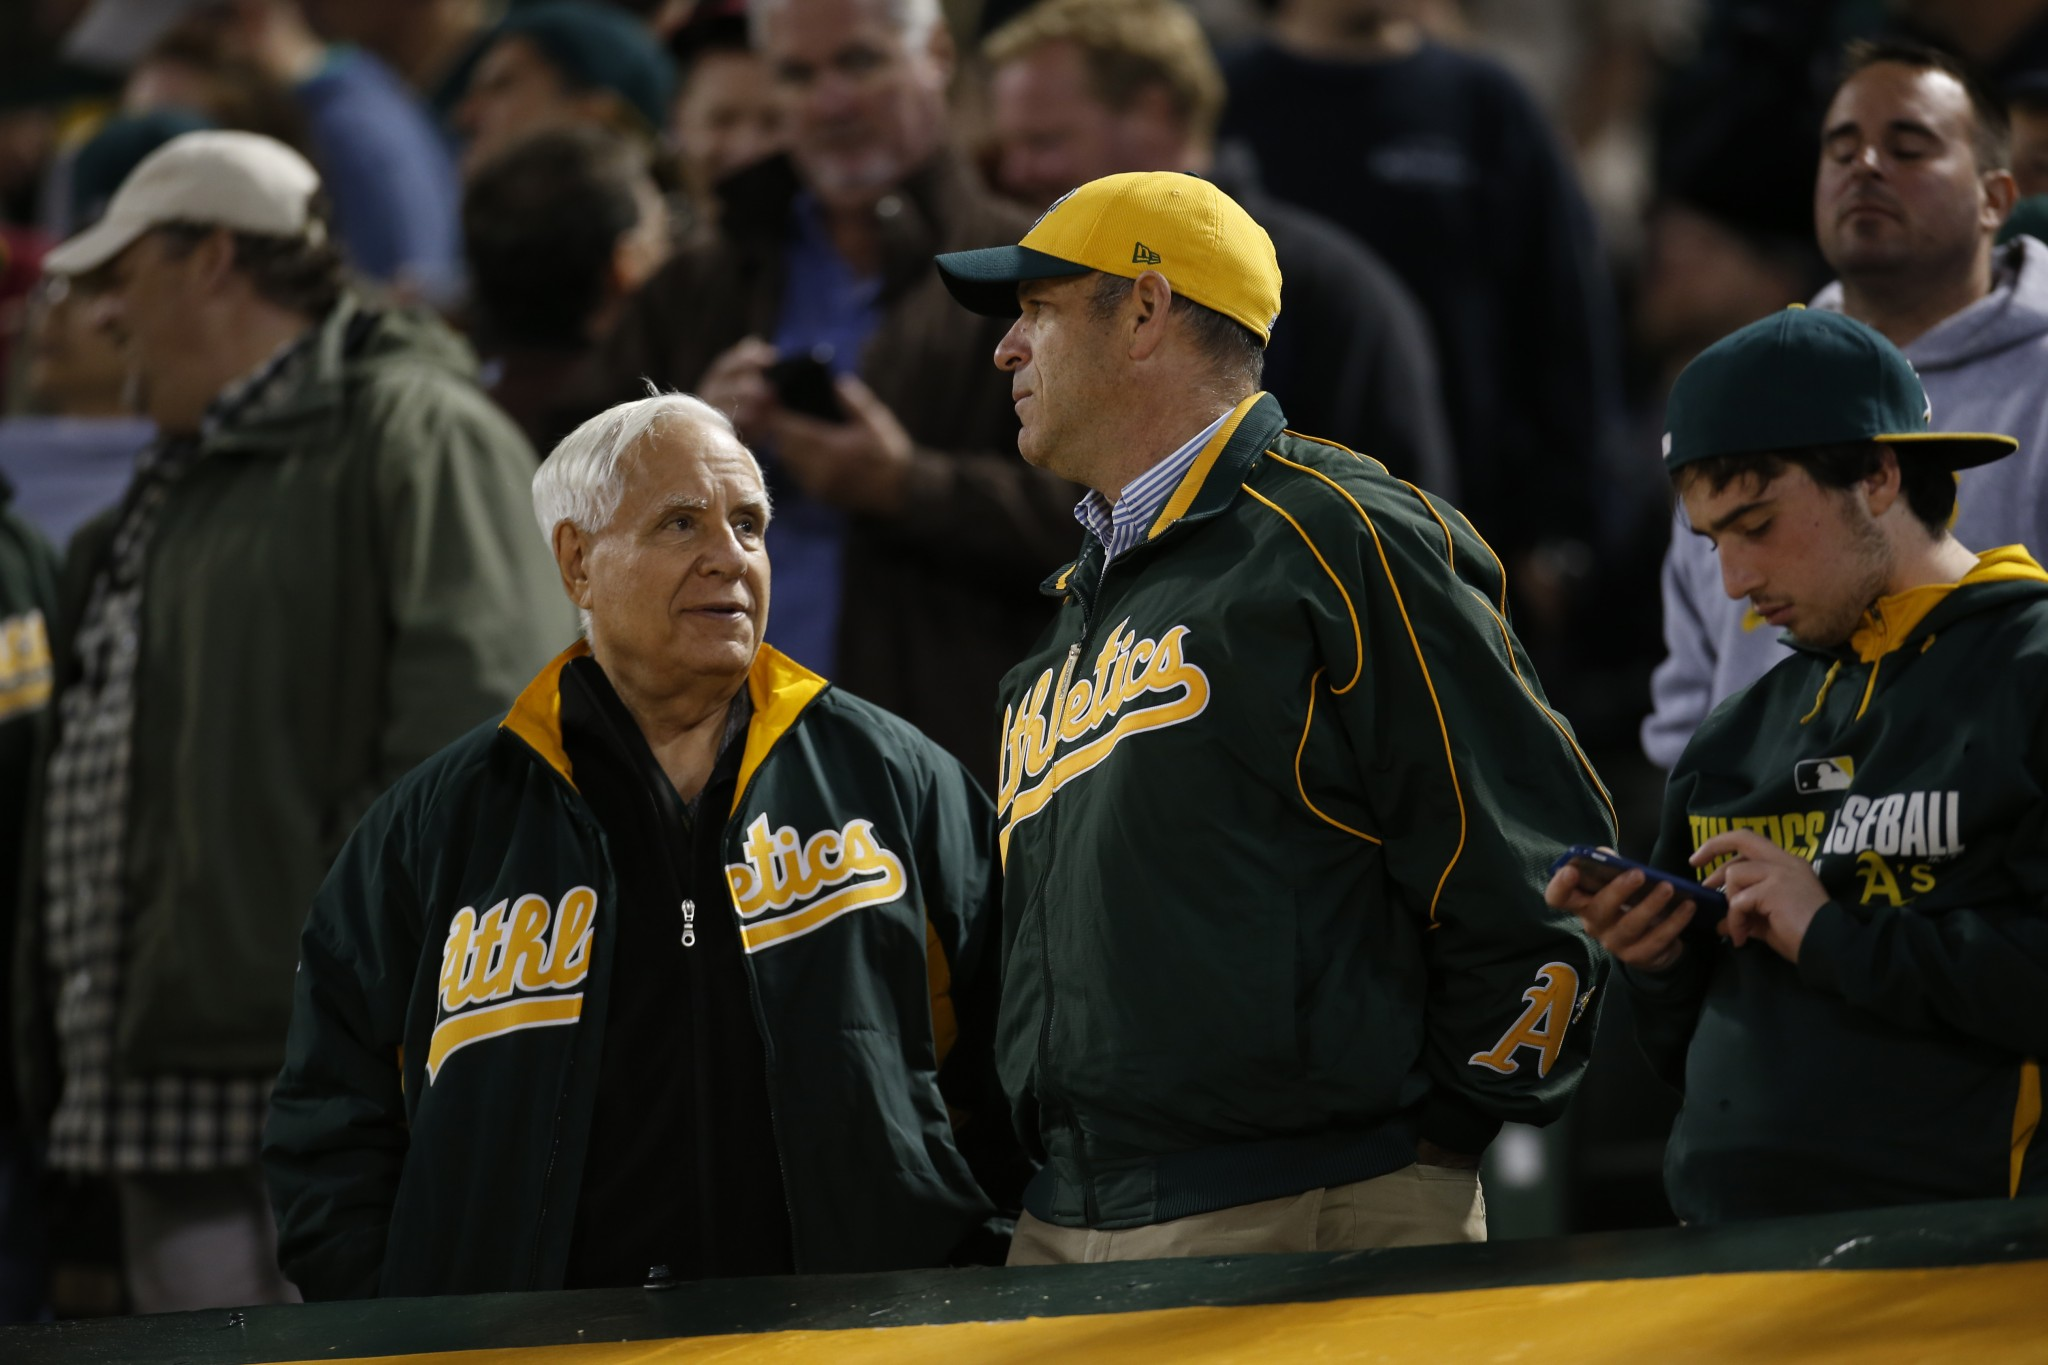 A's reaffirm desire to stay in Oakland amid ownership shake-up